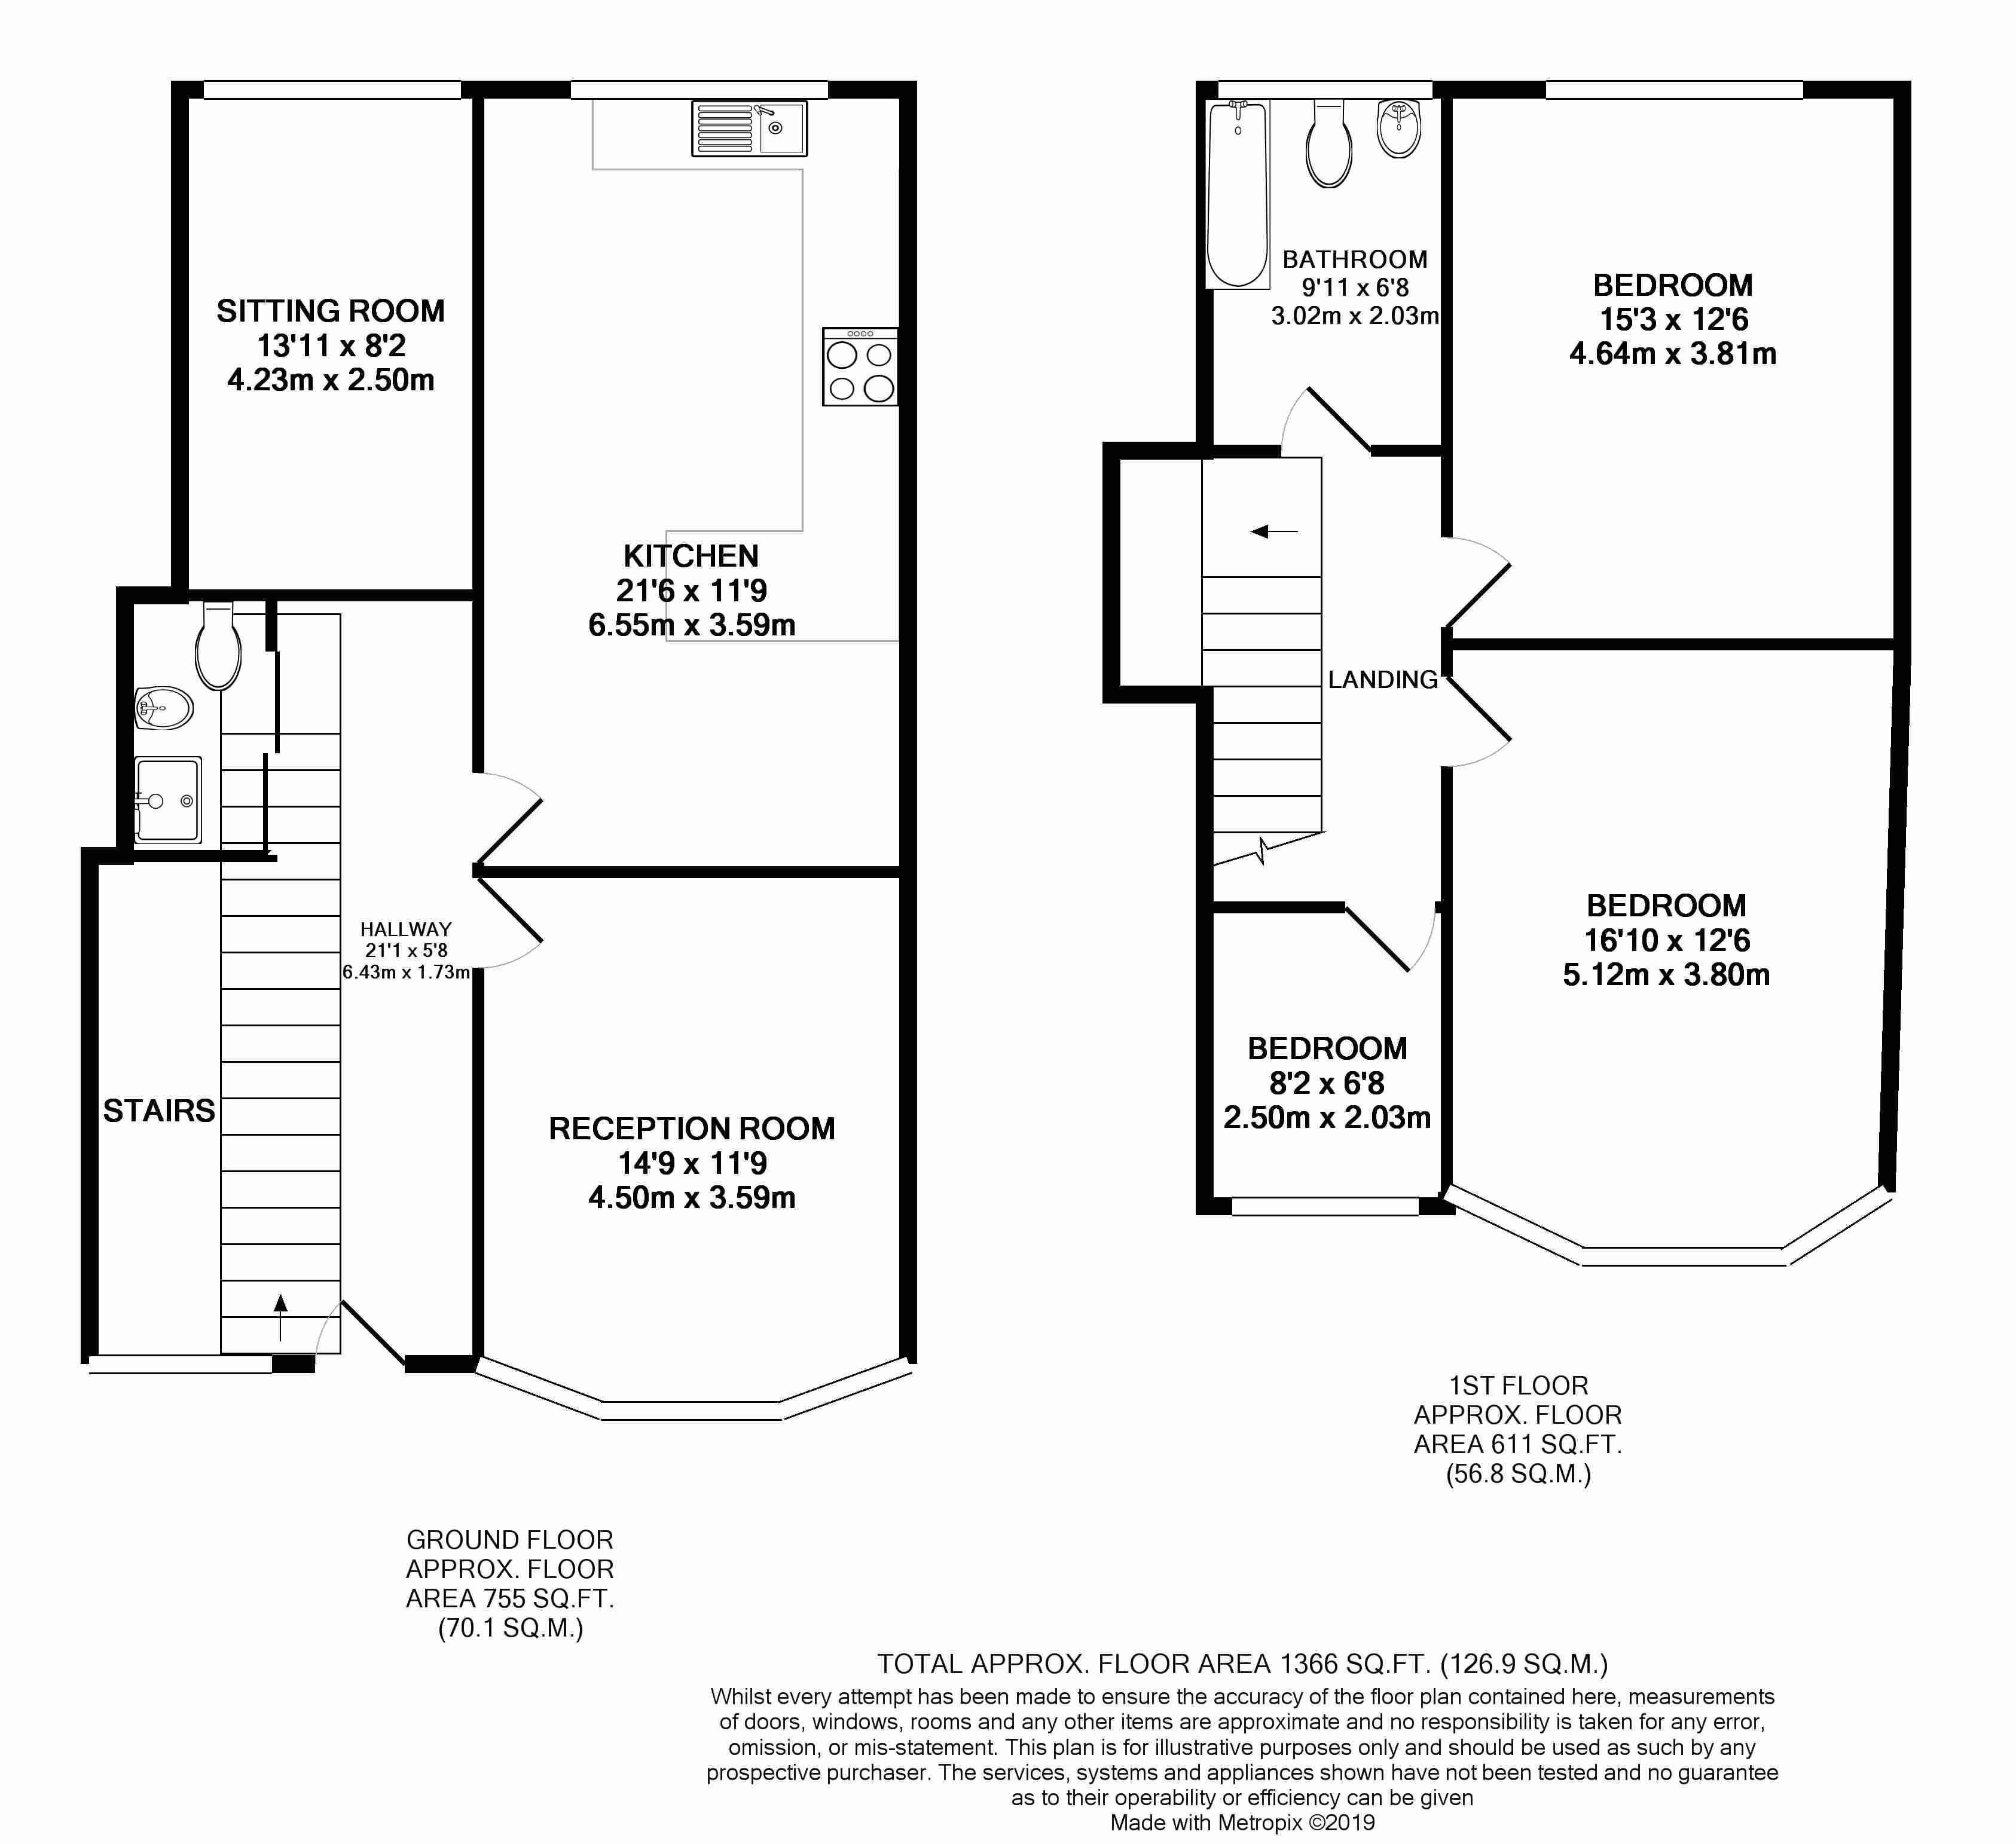 Floorplans For St Johns Road, Wembley, Middlesex